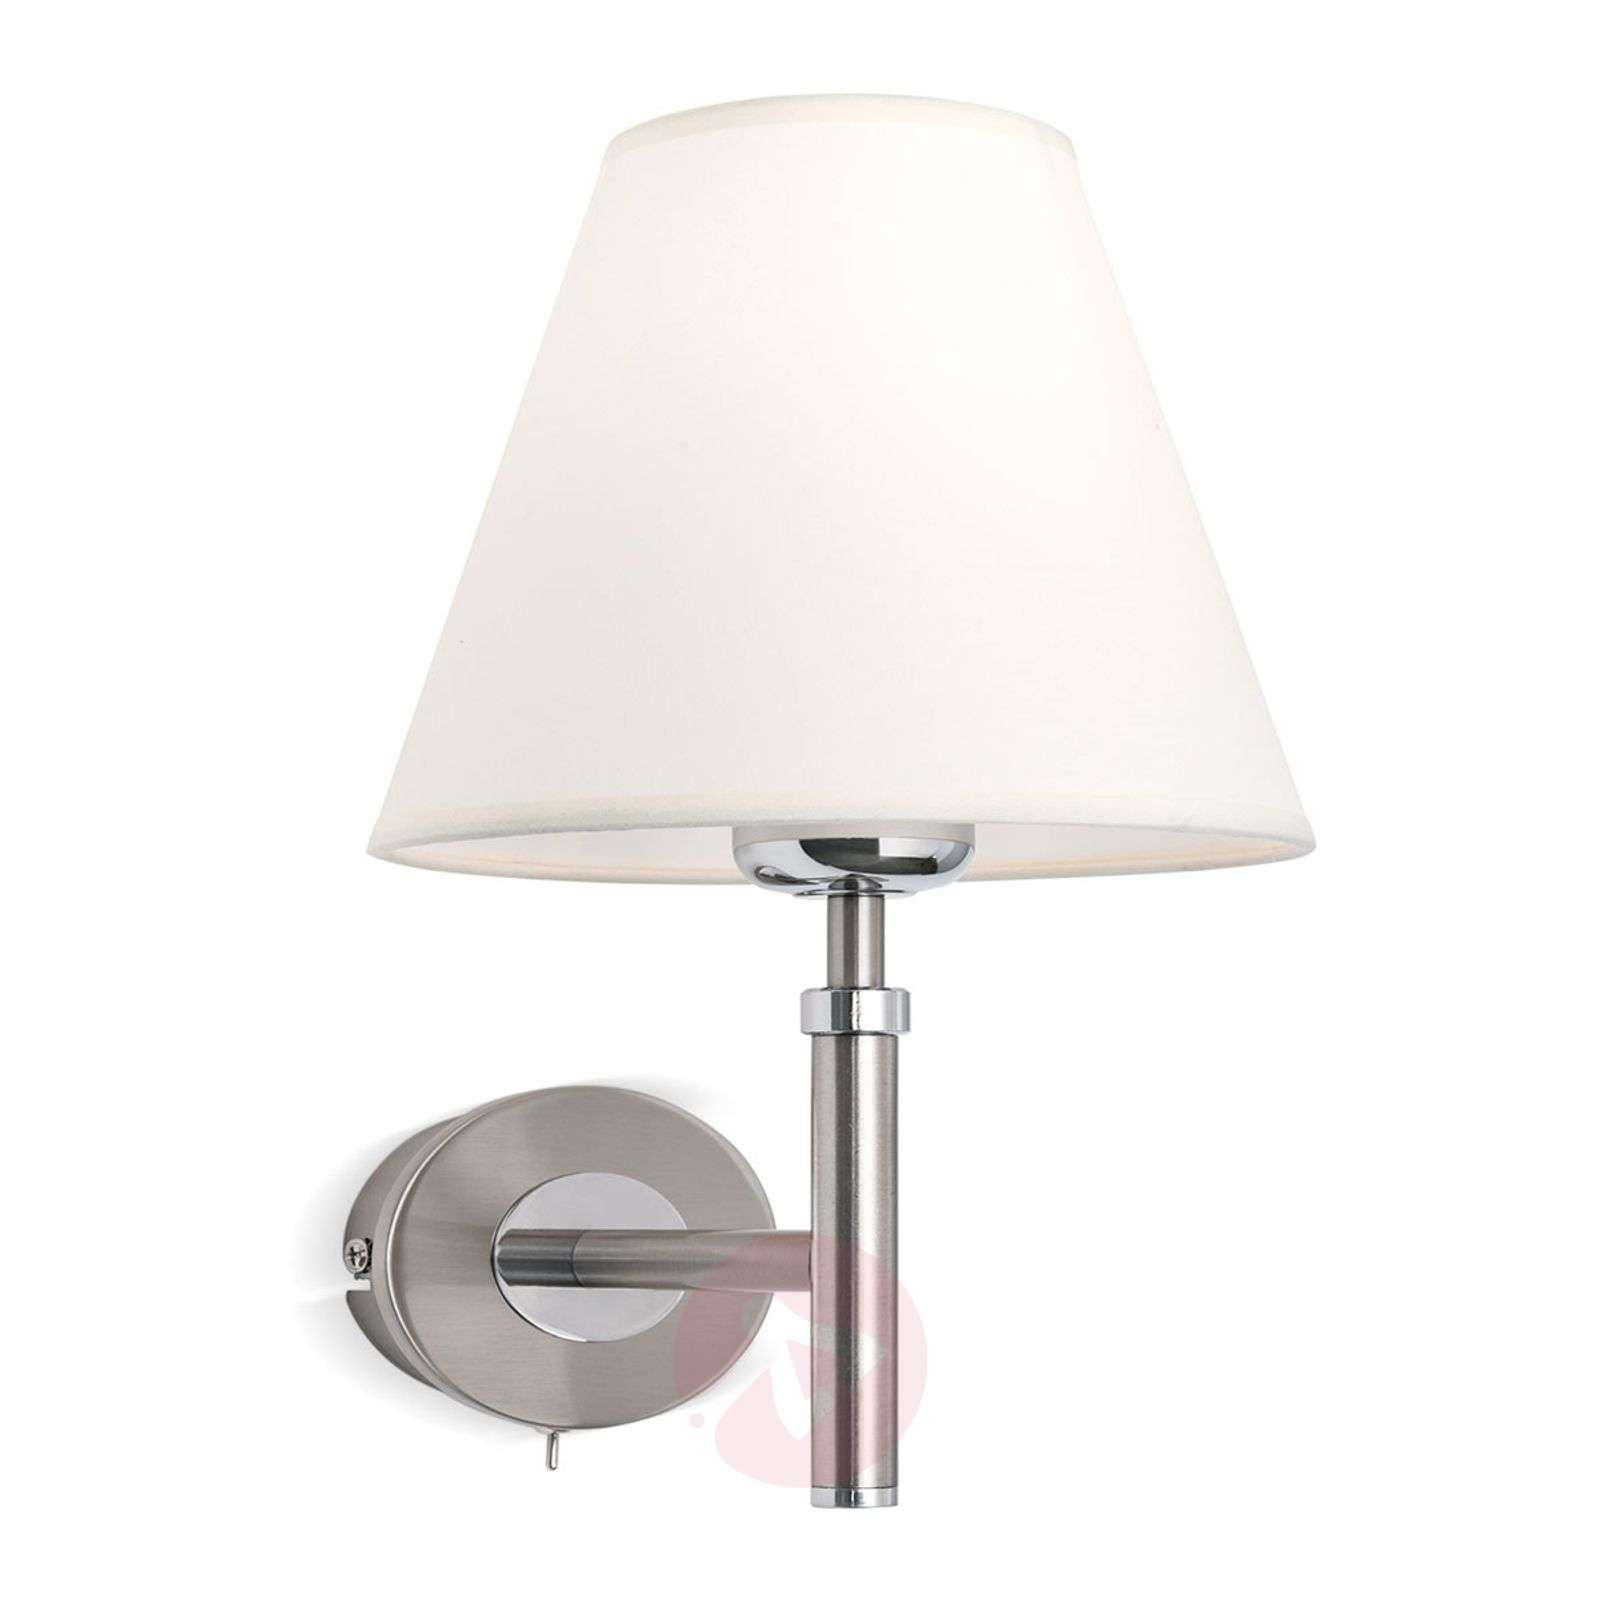 Nickel wall light Lilly with a fabric lampshade-7254753-03